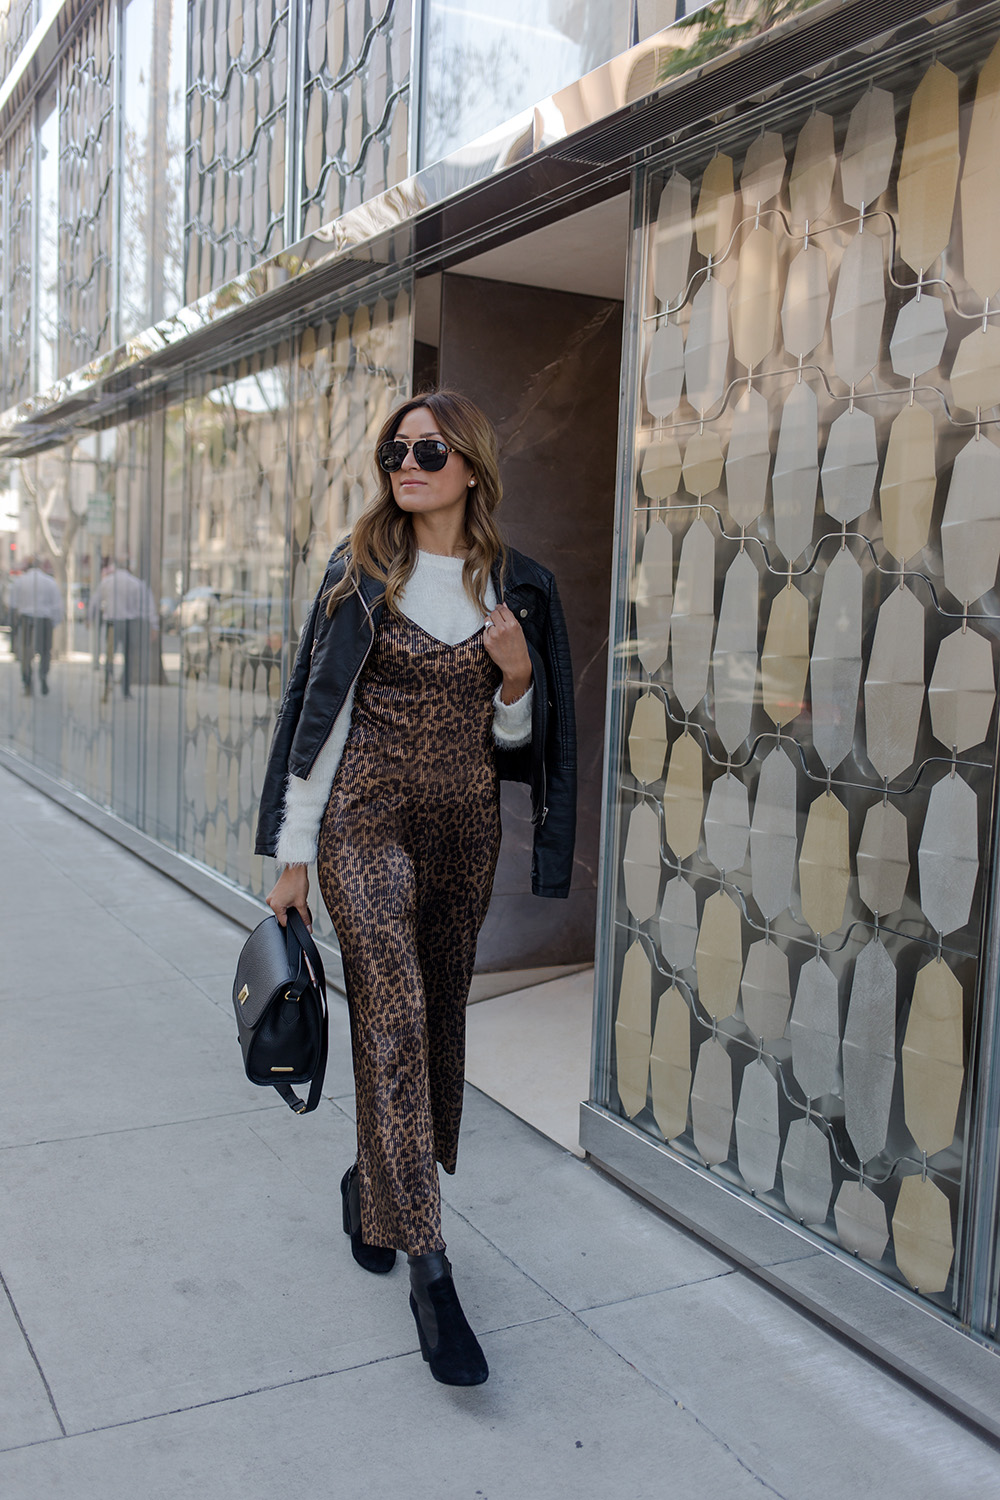 sans souci, leopard, two piece, chic, melrodstyle, streestyle, ootd, fashion, style, la blogger, latina blogger, hispanic blogger, mexican blogger, beverly hills,